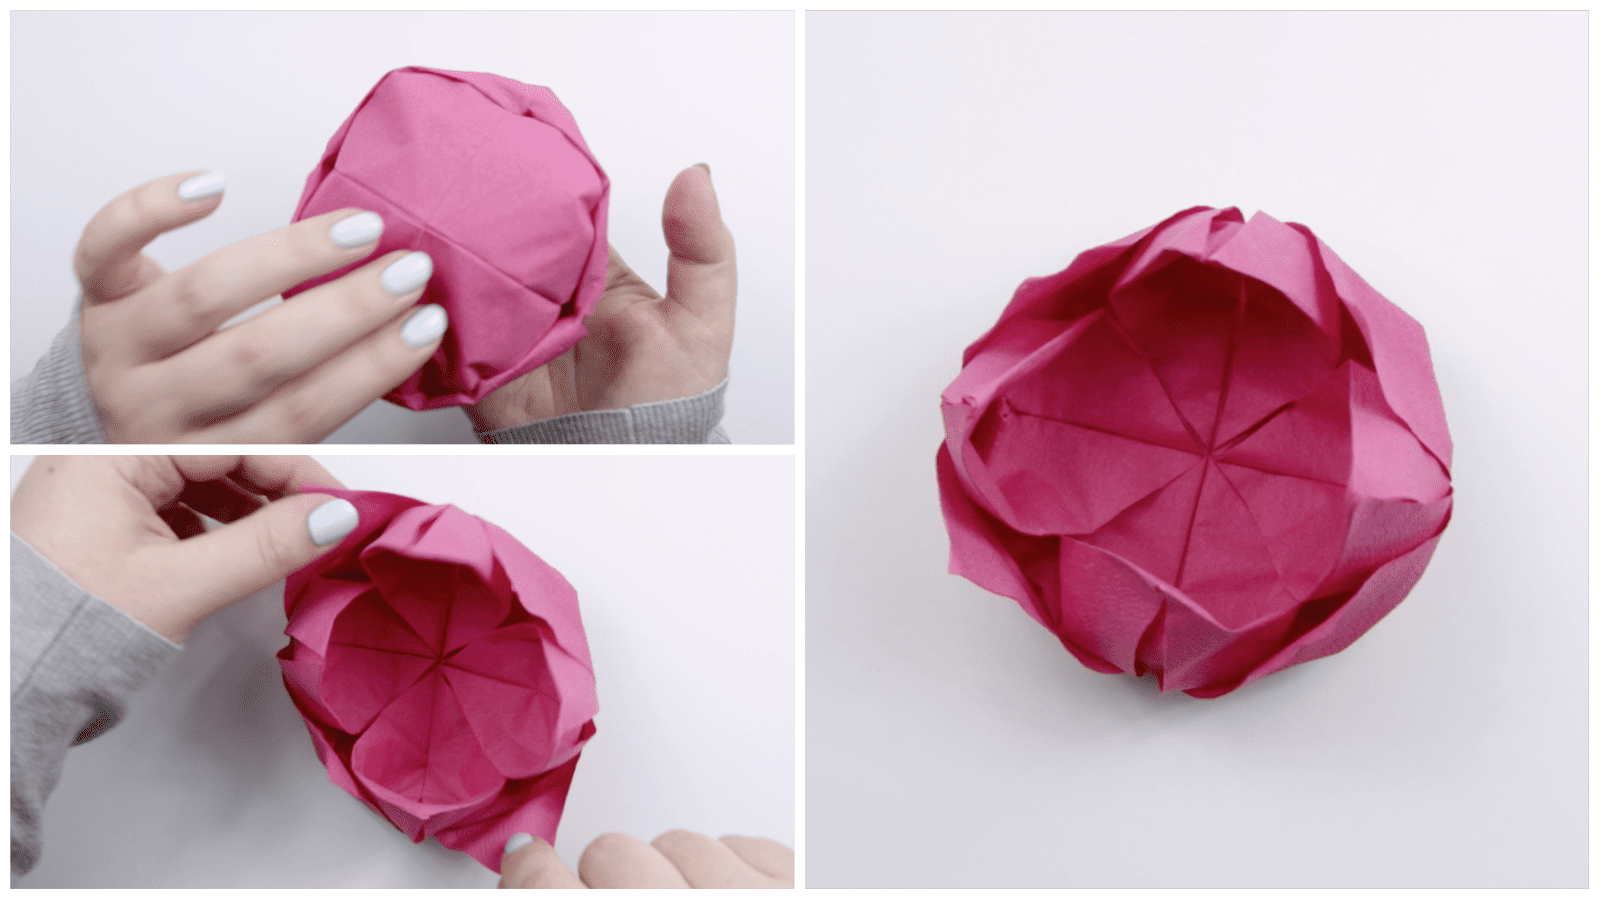 Refining the shape of the origami lotus